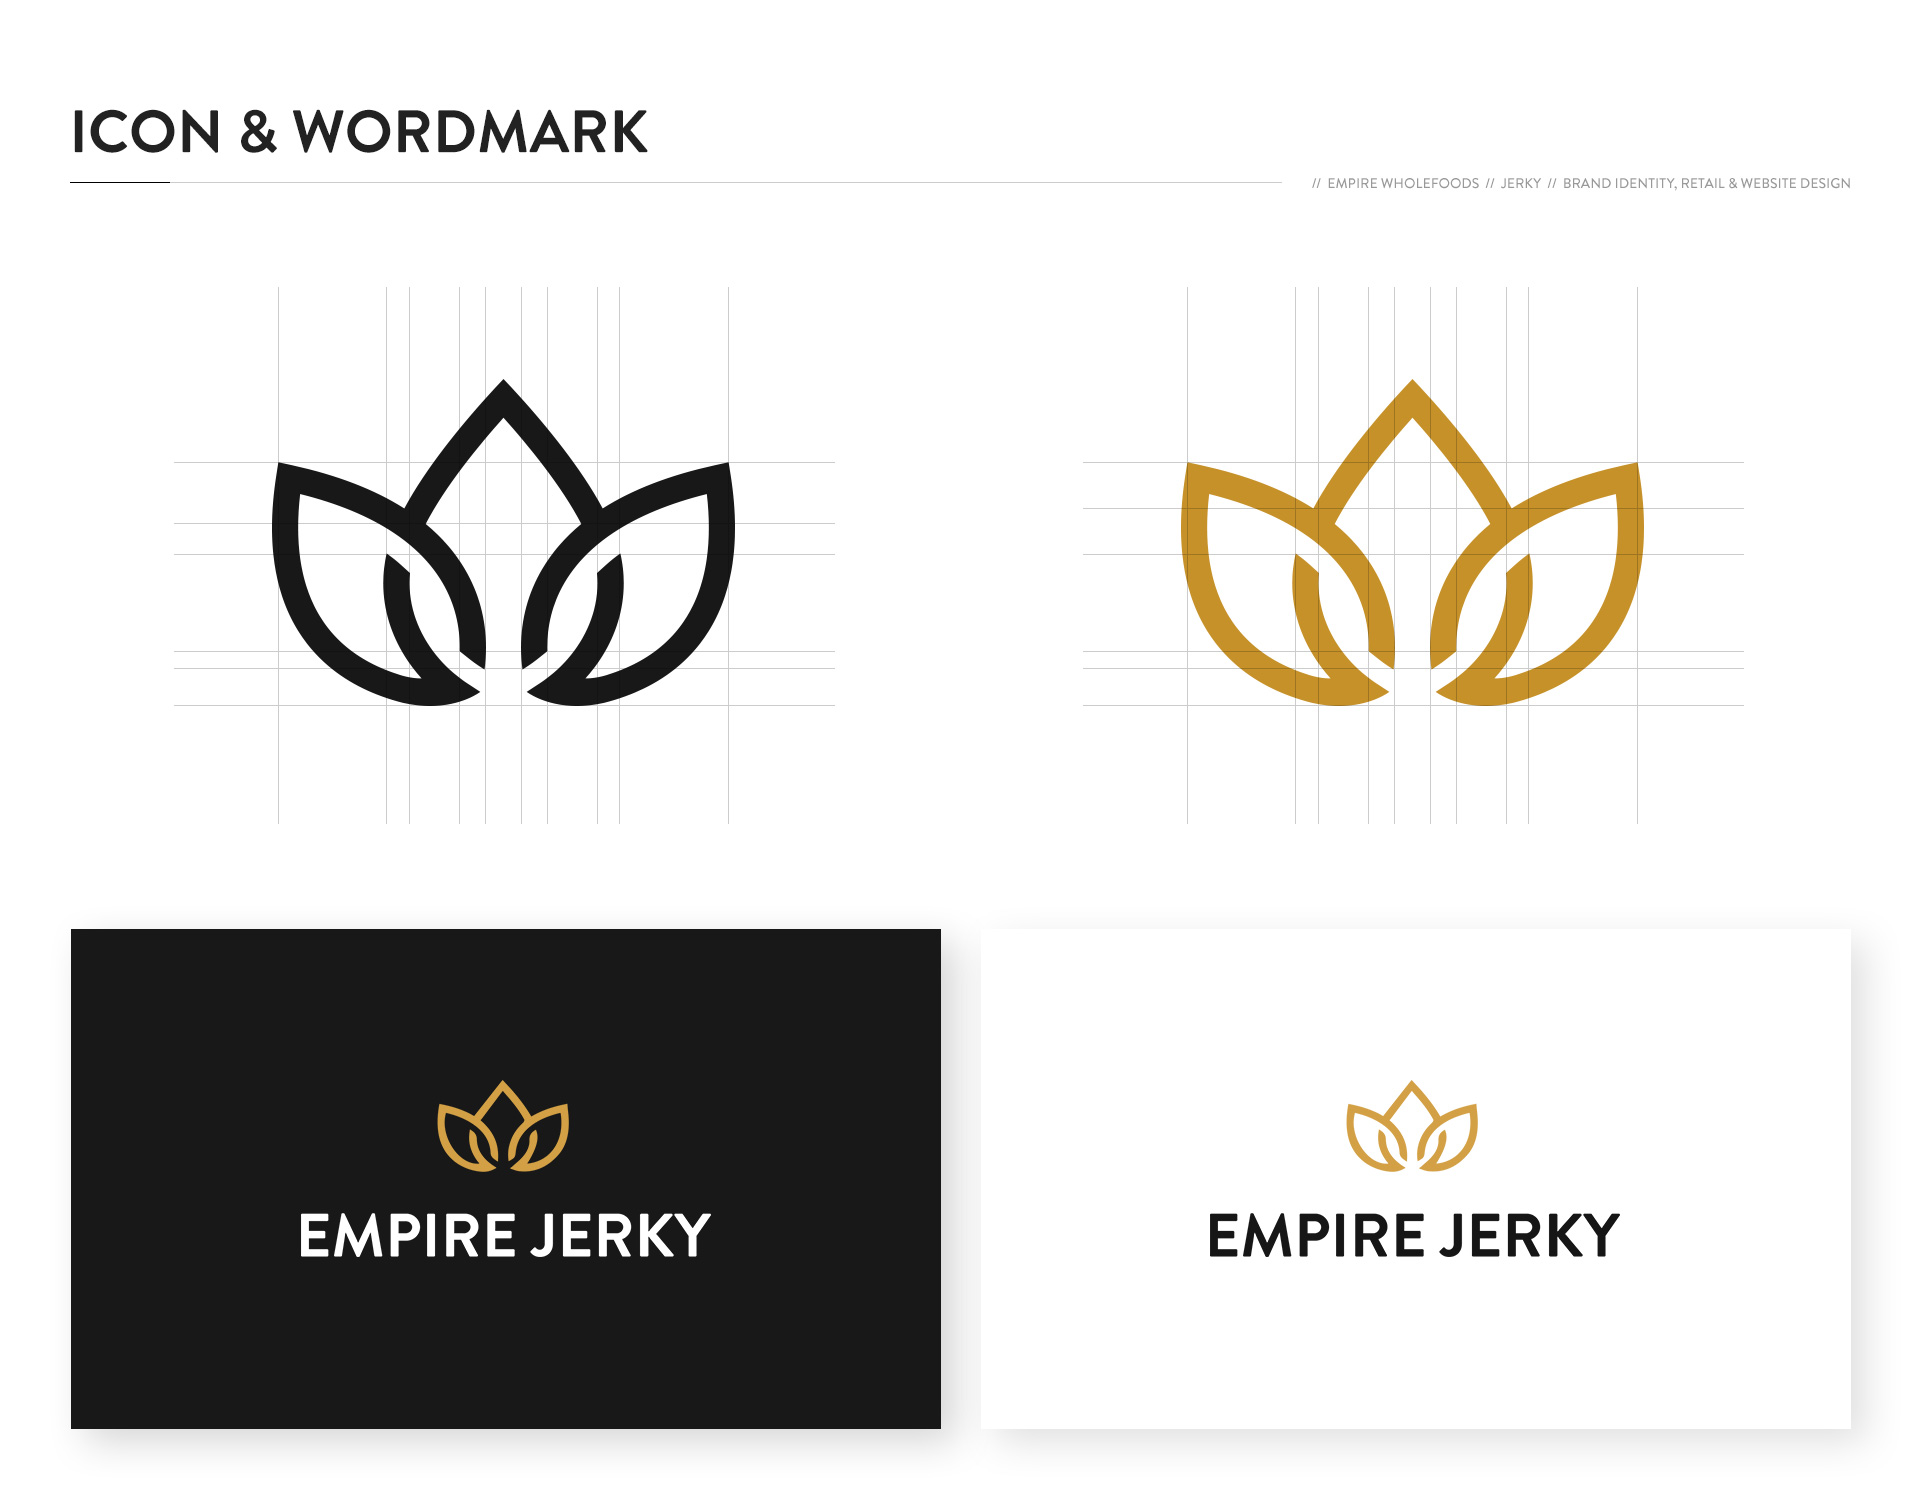 Empire Jerky